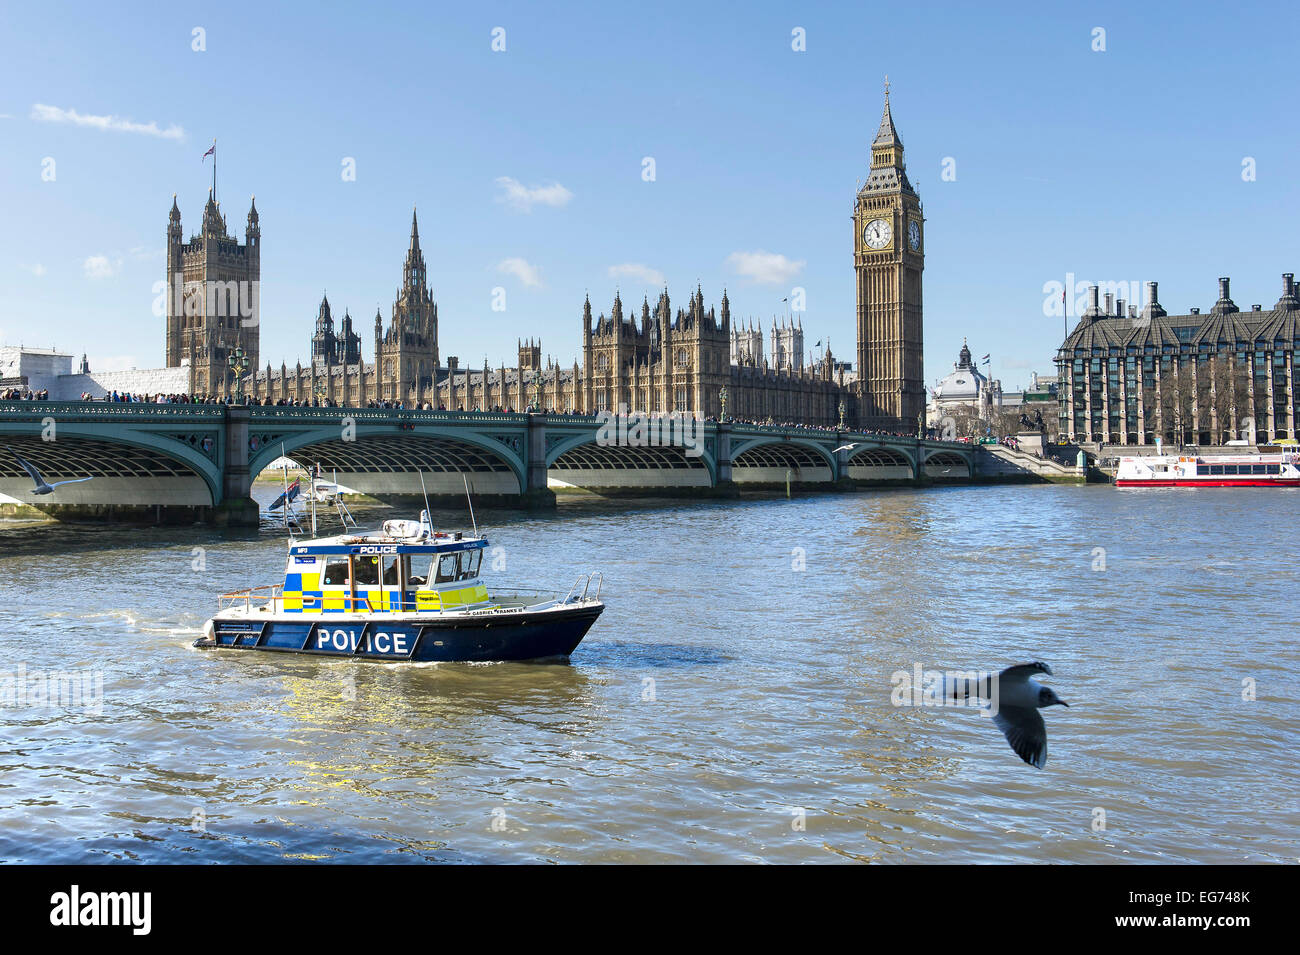 A Metropolitan Police fast patrol vessel on the River Thames near Westminster Bridge. - Stock Image